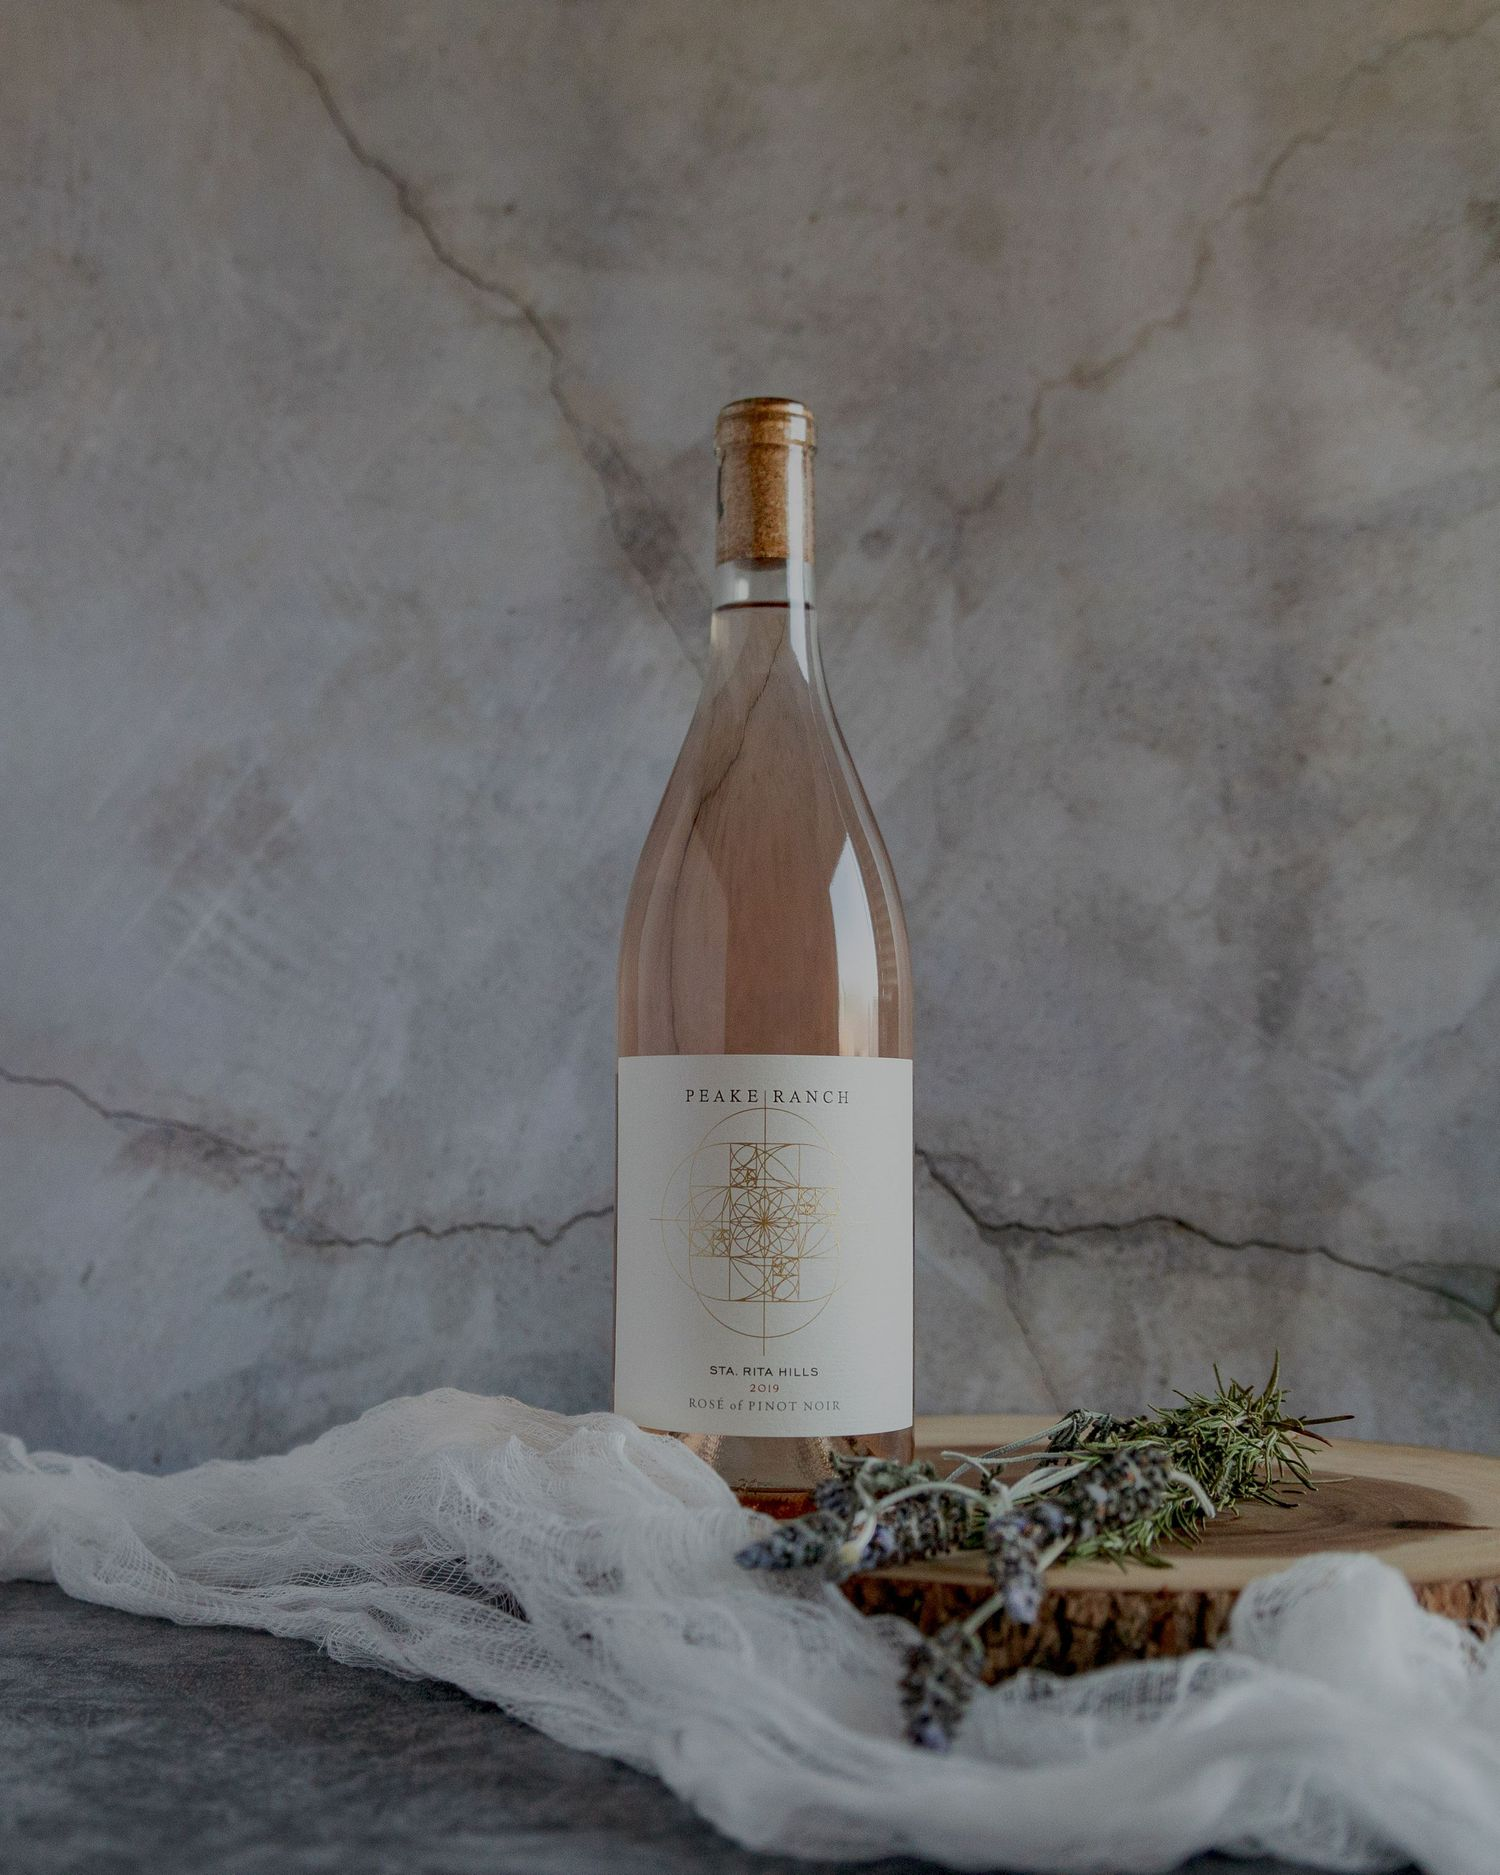 bottle photo of Peake Ranch pinot noir rosé